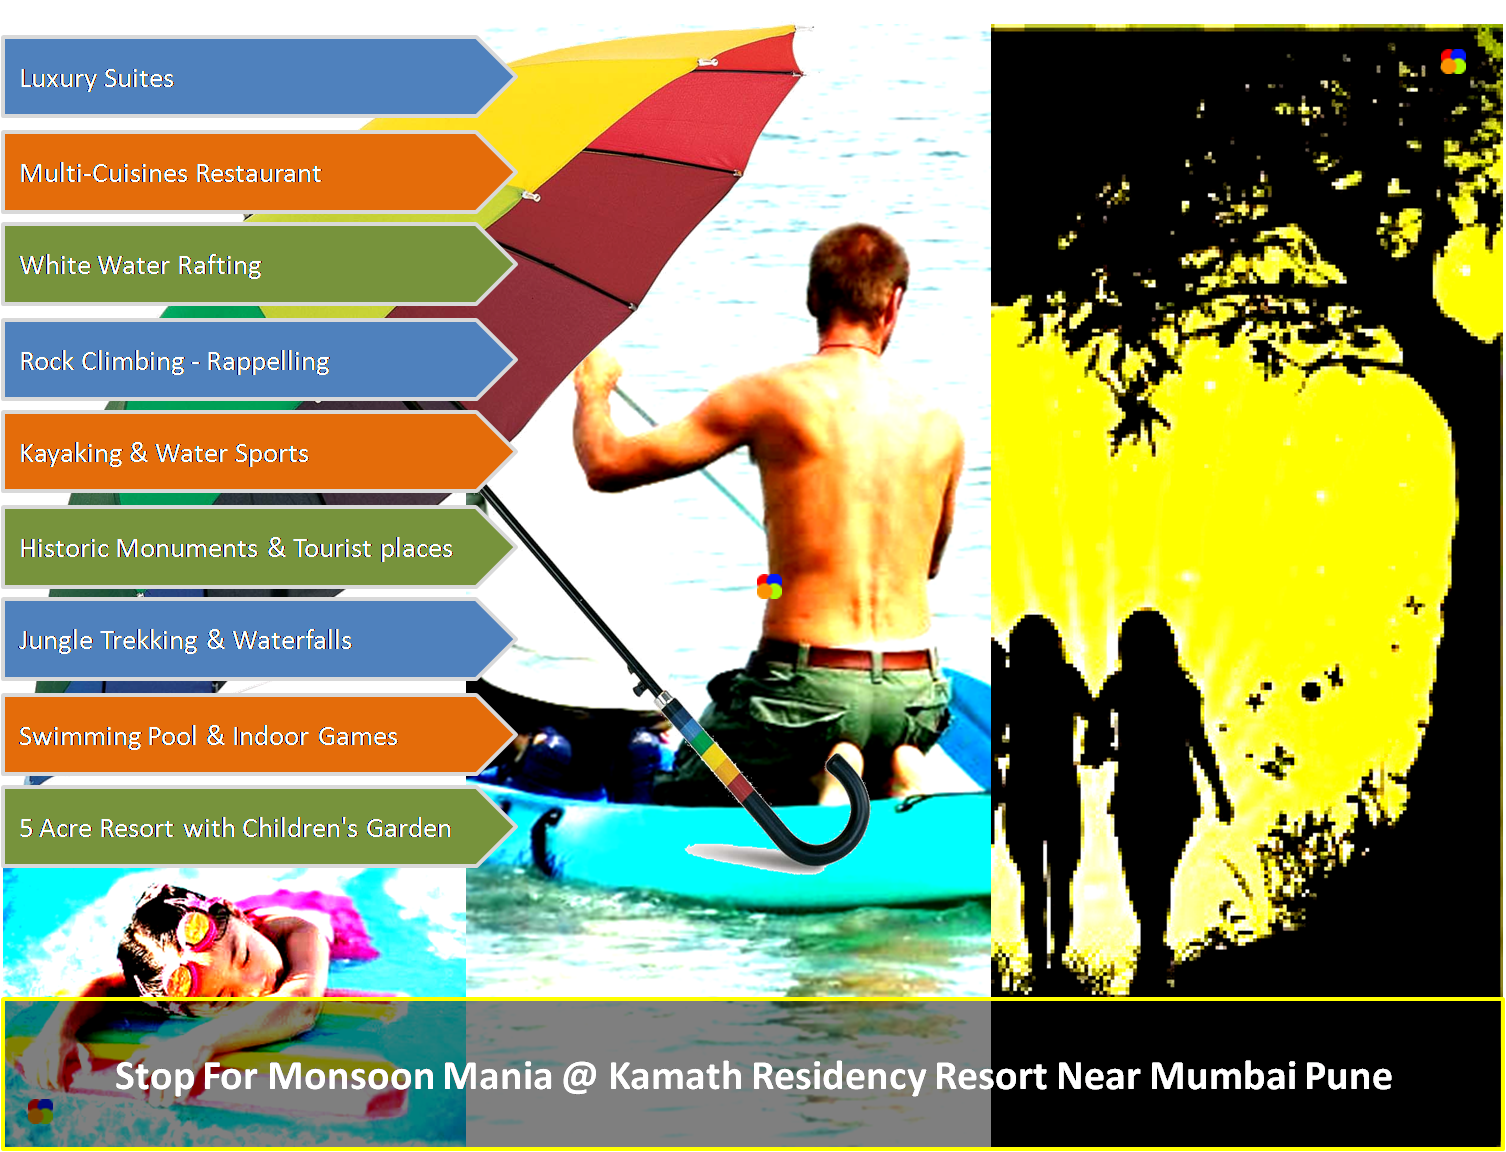 Monsoon Holiday Packages India – Stop For Monsoon Mania